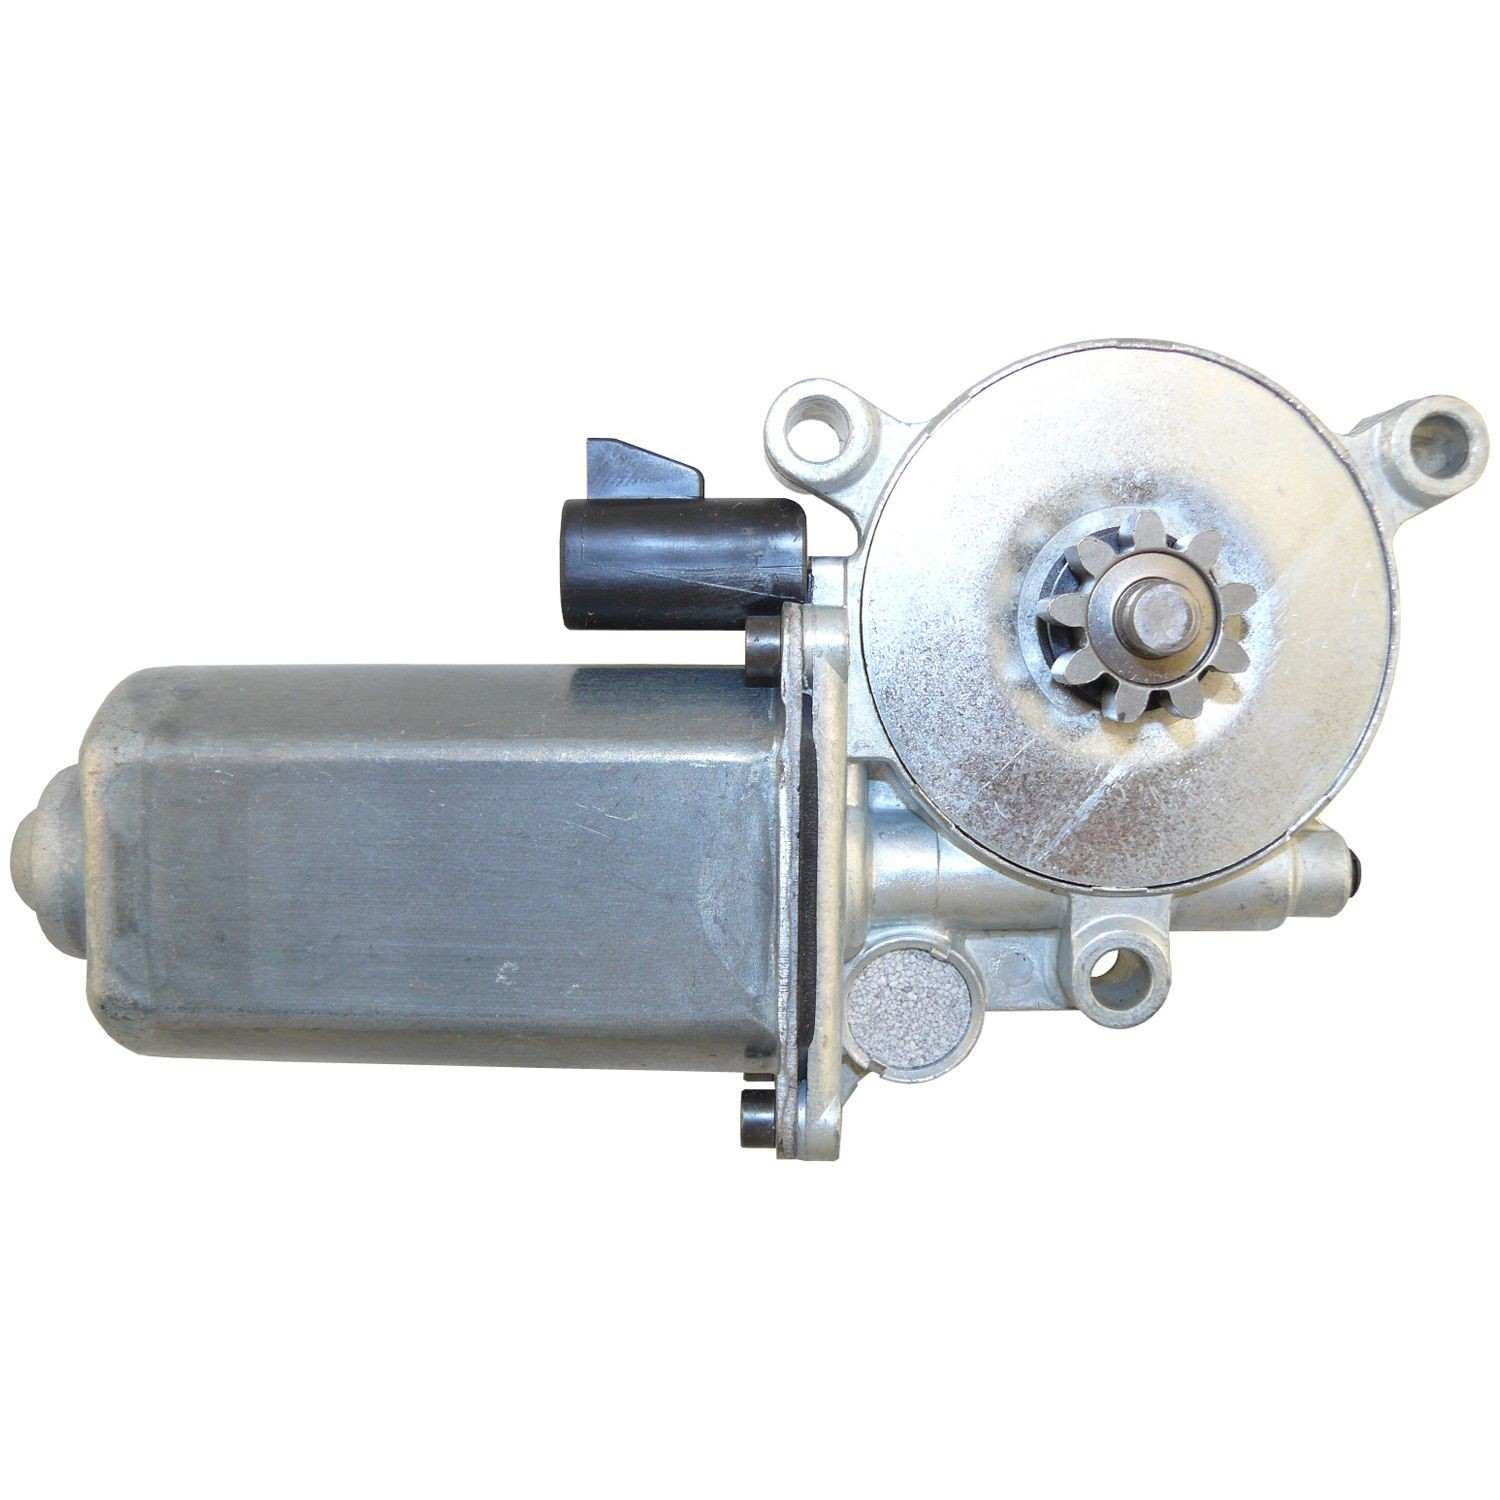 MAGNETI MARELLI OFFERED BY MOPAR - Power Window Motor - MGM 1AMWM82245